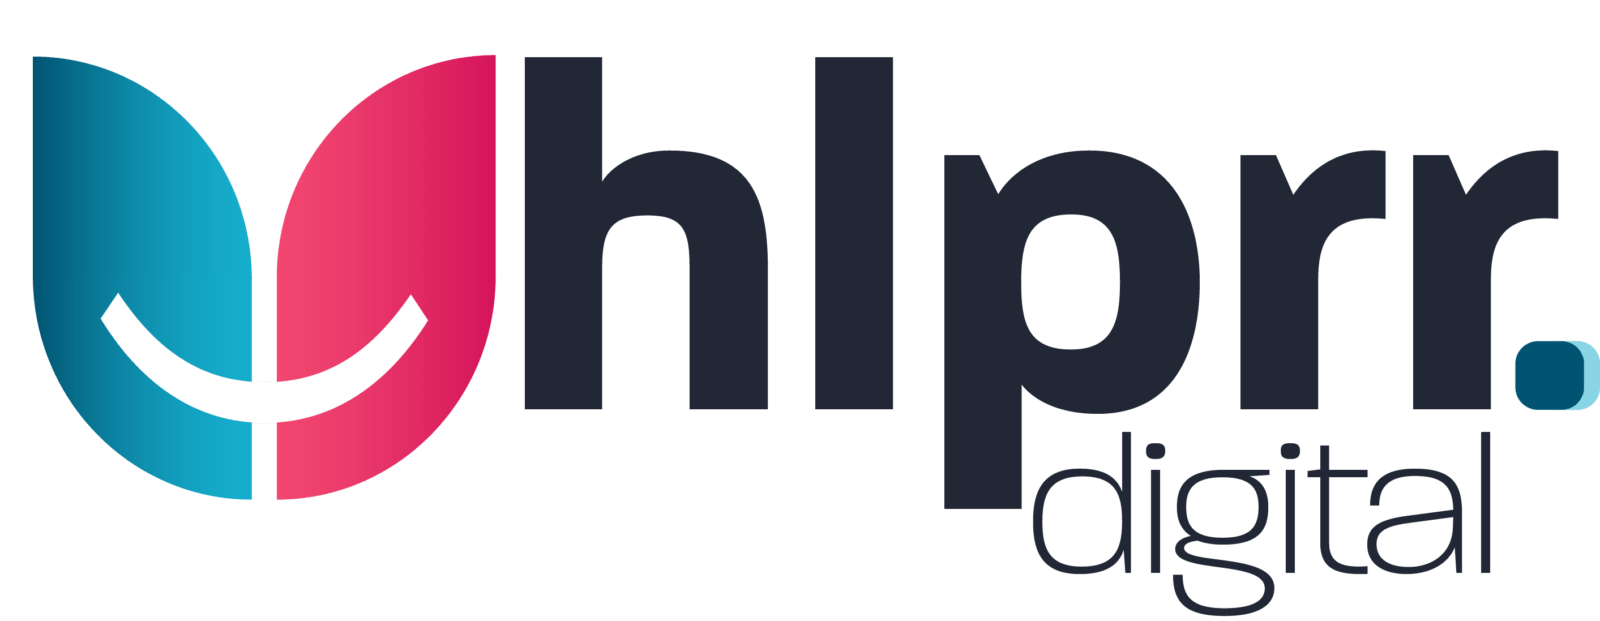 hlprr.digital – websites fully managed